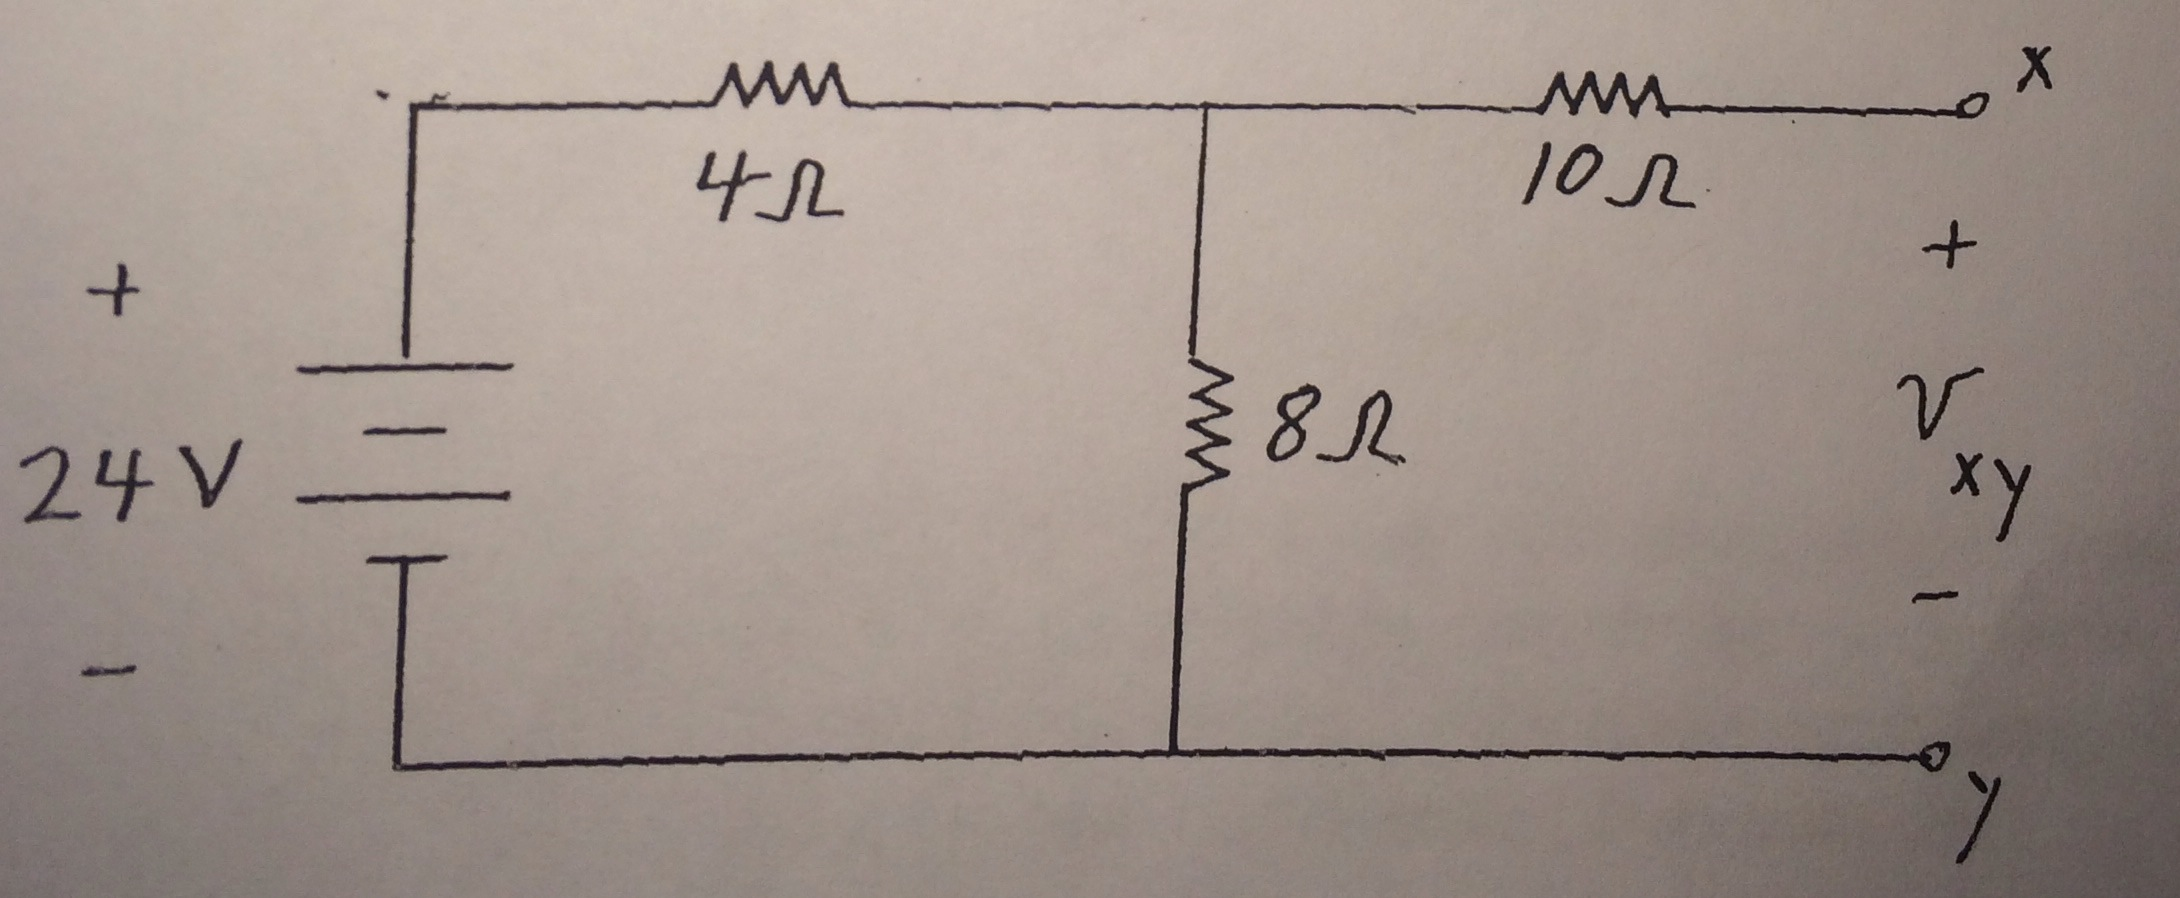 Determine the value of the voltage designates as V